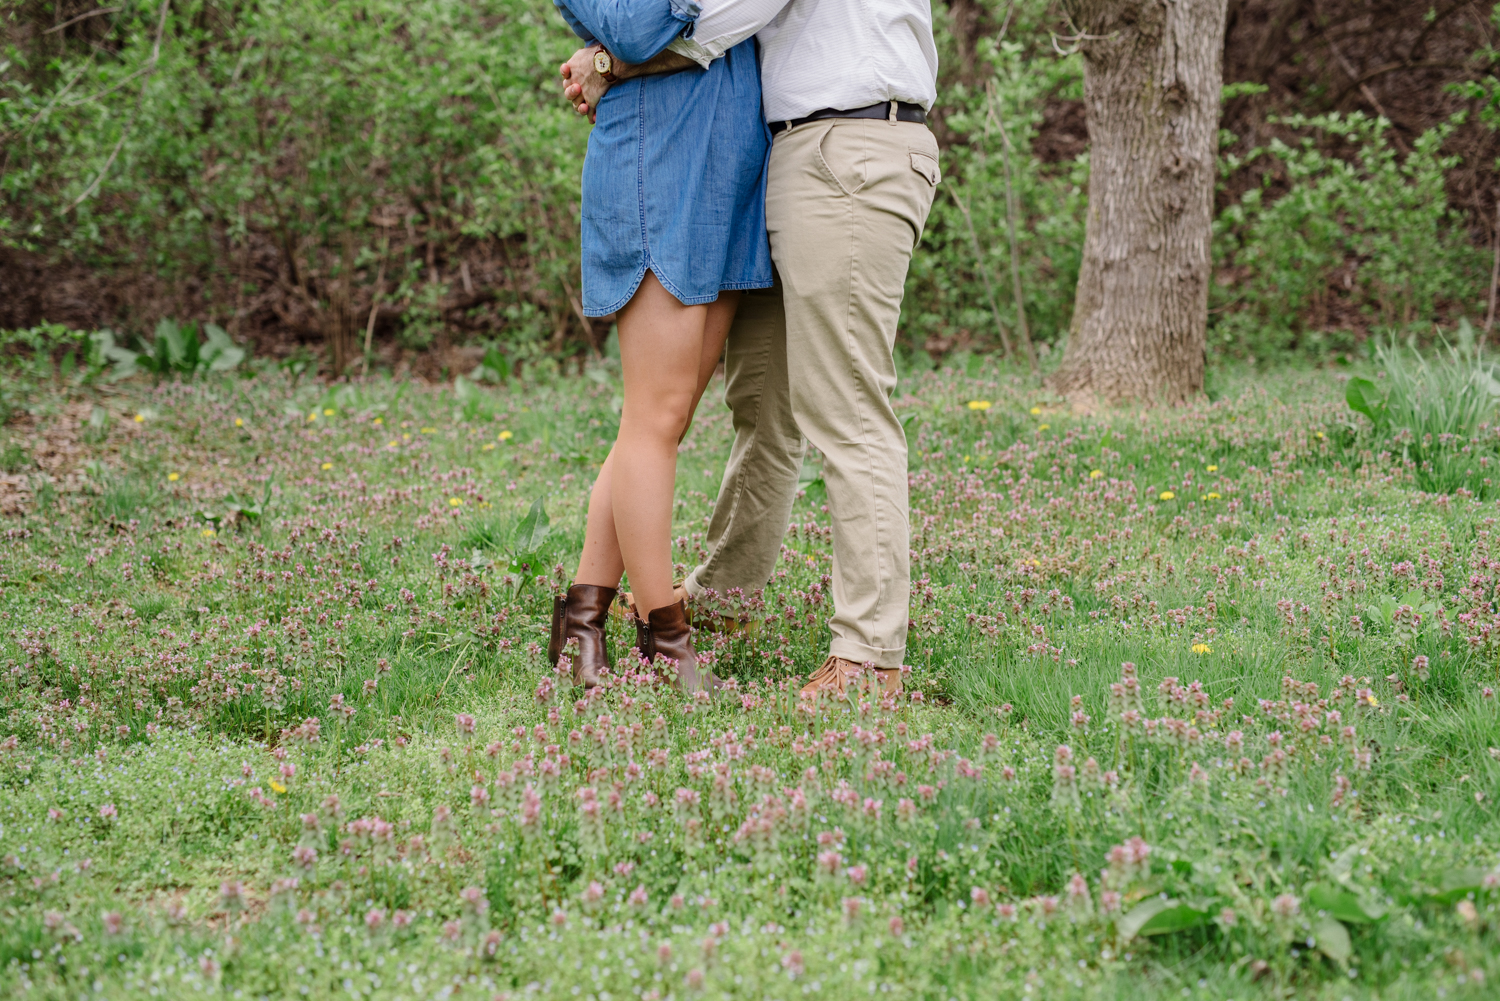 Matt+Melissa- Meadowlands Environmental Center Engagement Session- New Jersey- Olivia Christina Photo-74.JPG